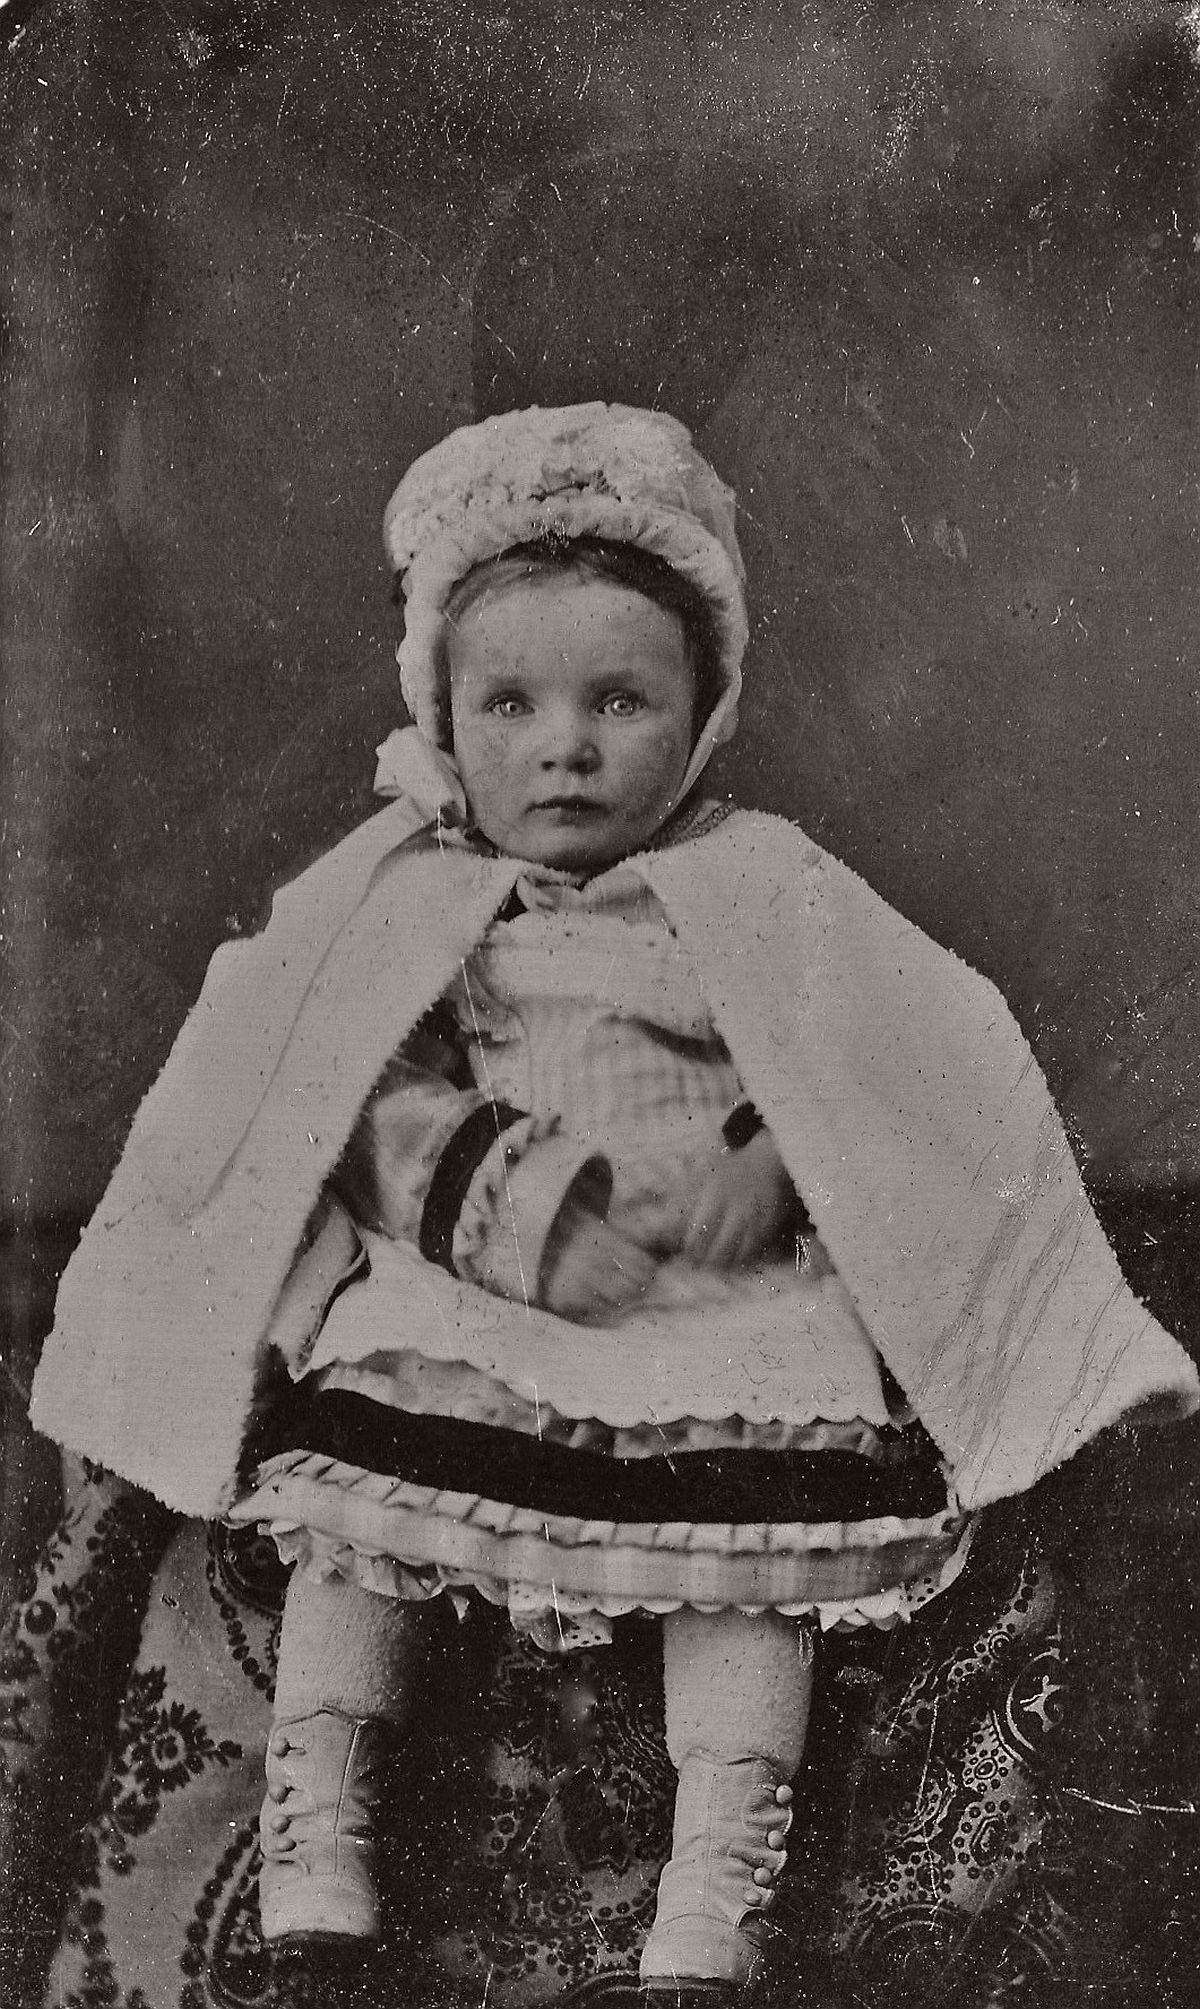 Victorian Era Tintype Portraits of Children (1870s and 1880s)